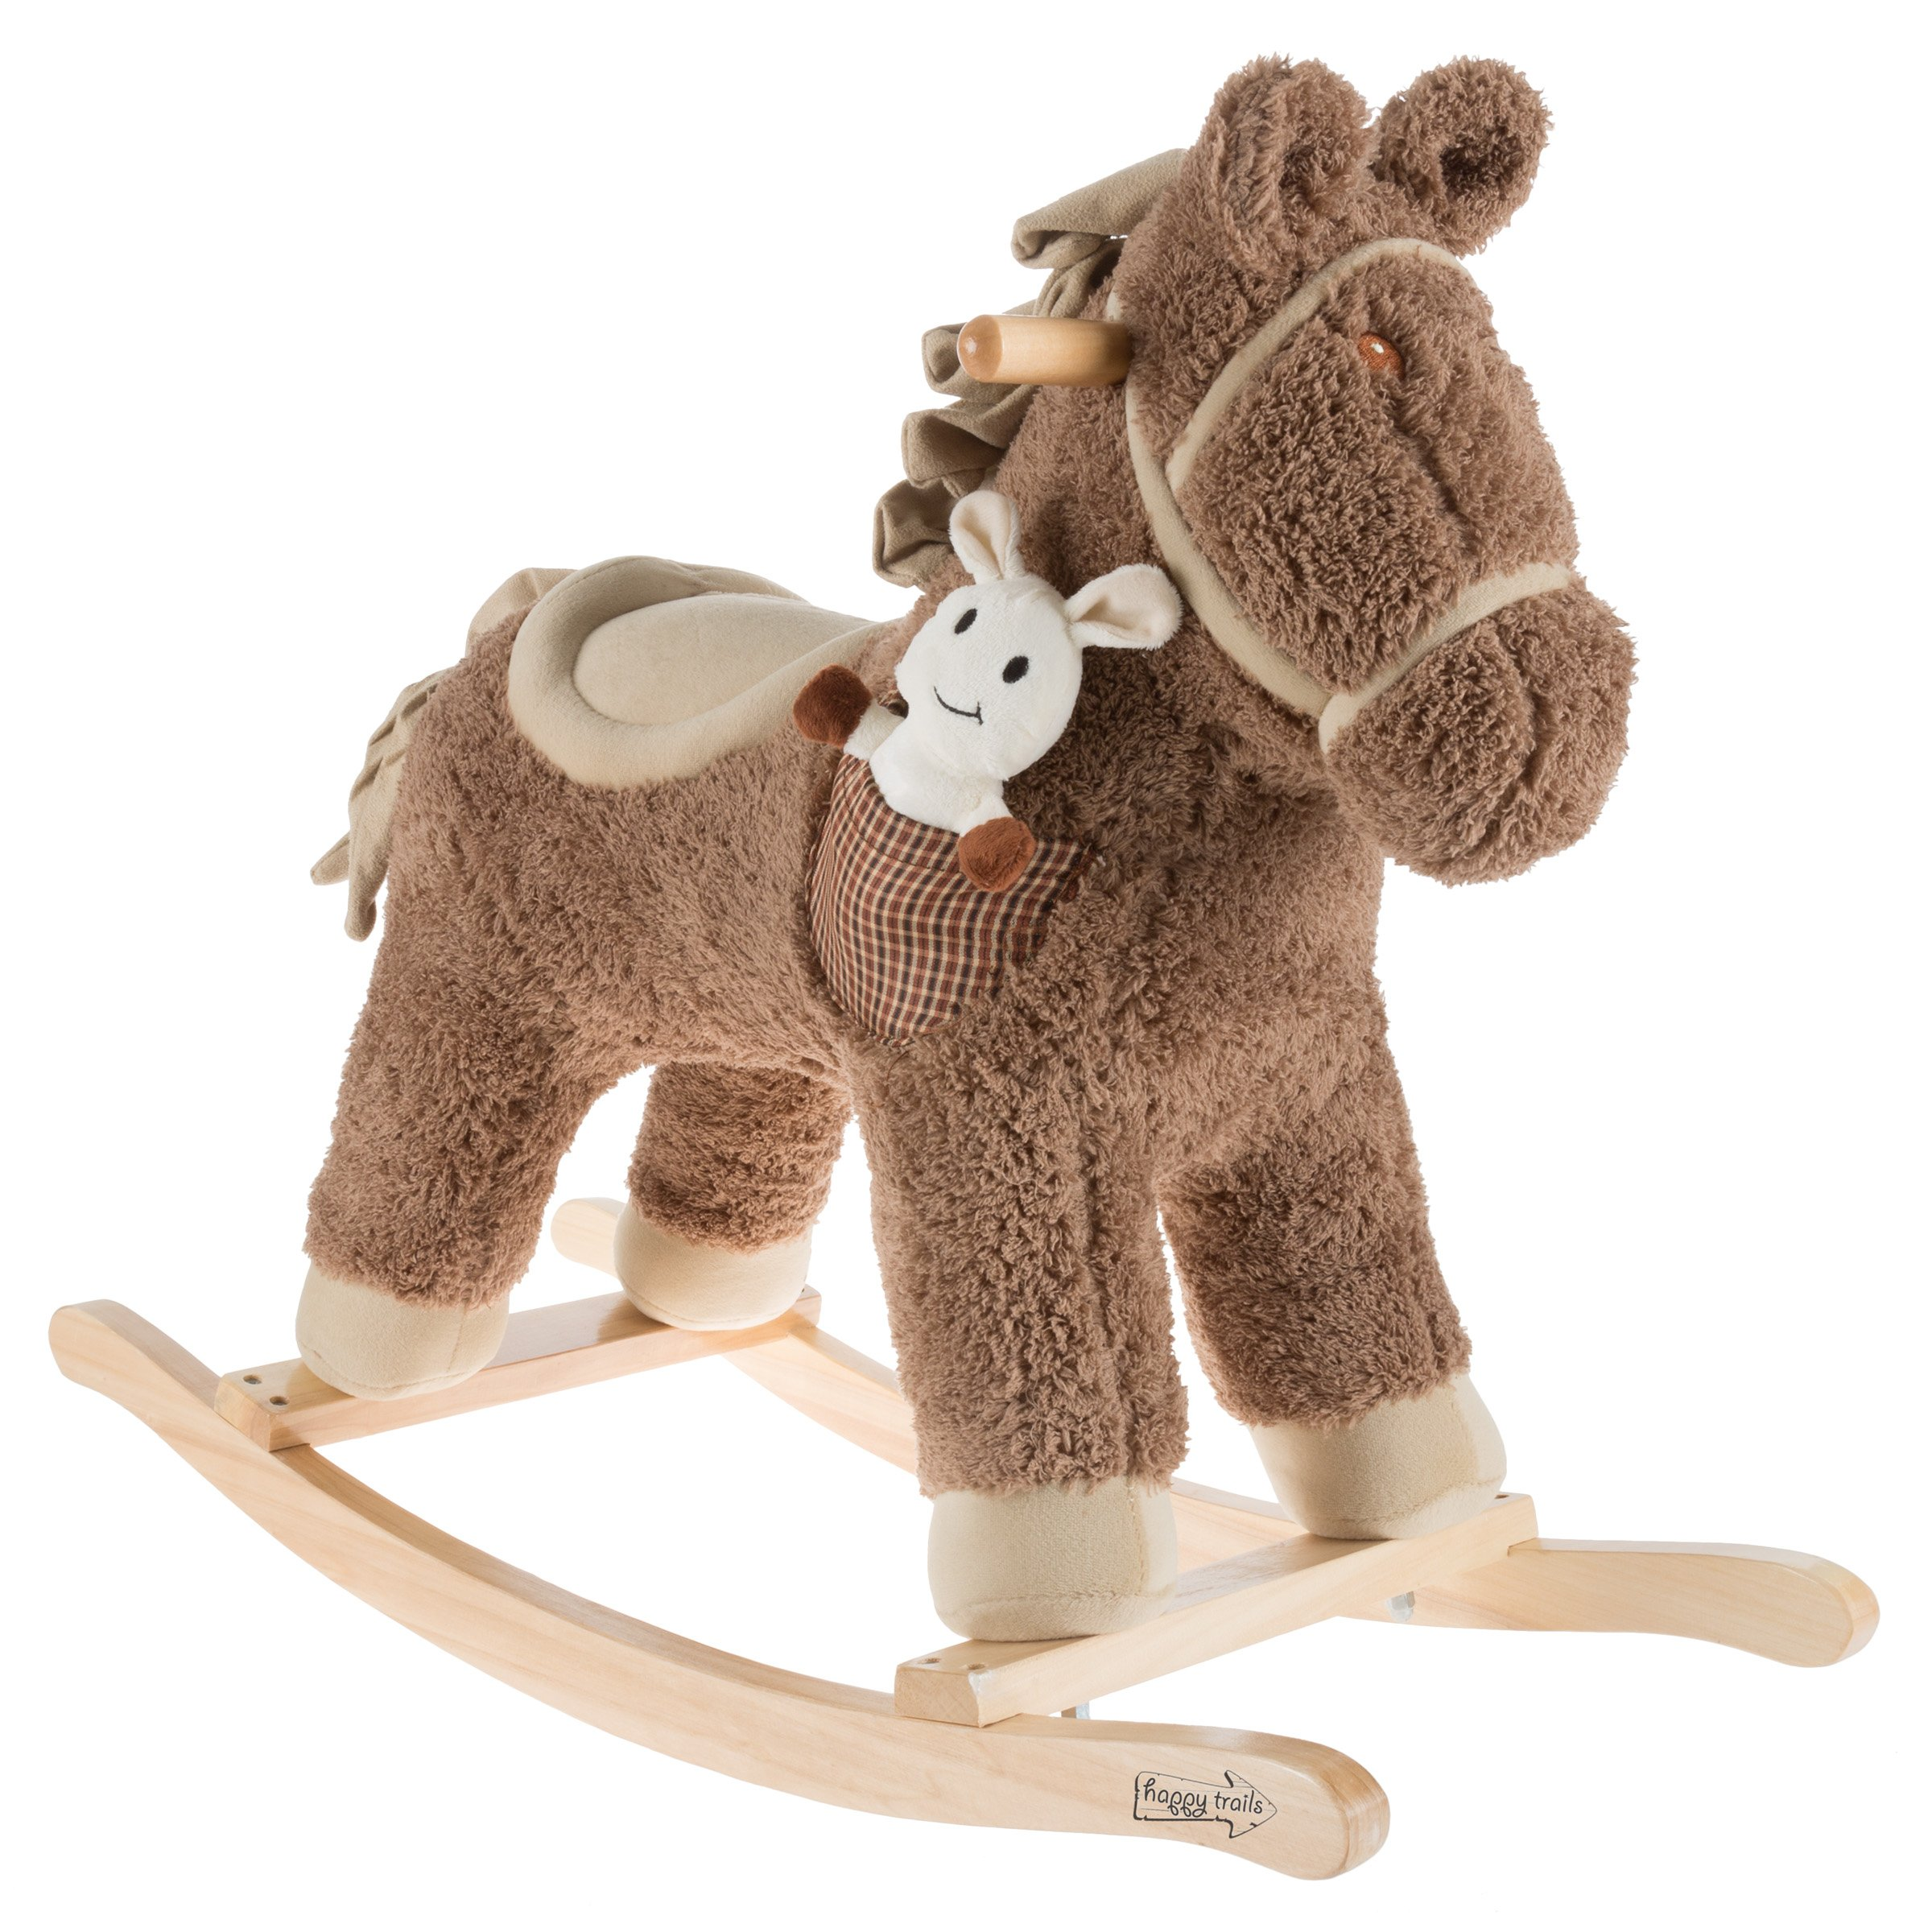 Hey!Play! 80-BC6-069 Rocking Horse Ride-on Toy, Light Beige